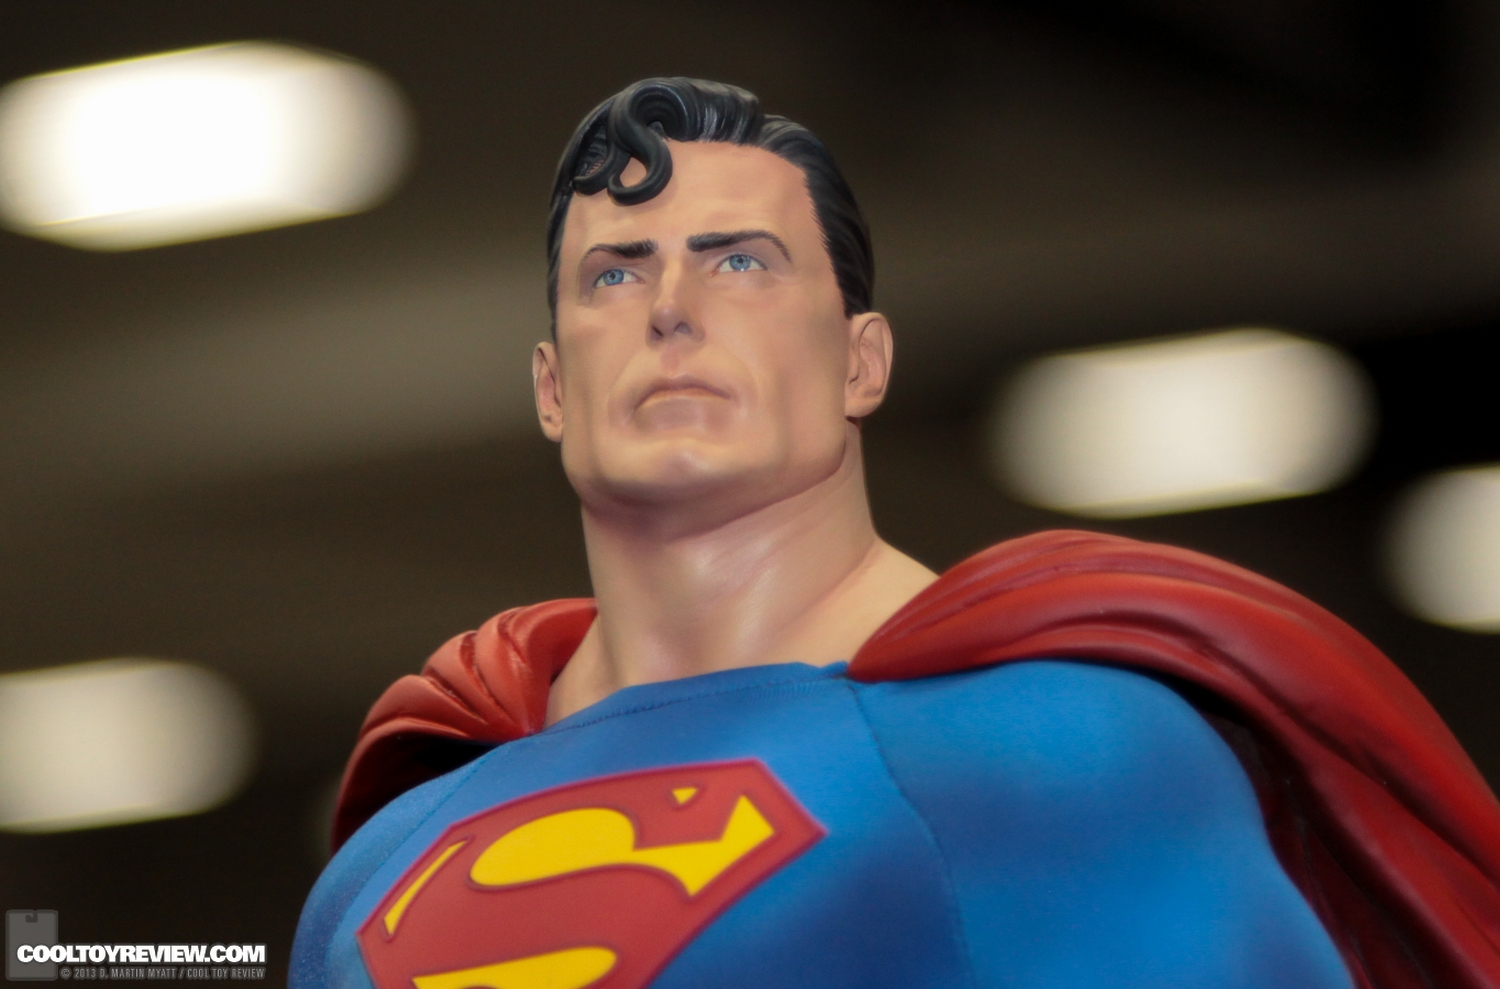 [Sideshow] Superman - Premium Format Figure - LANÇADO!!!! - Página 23 SDCC_2013_Sideshow_Collectibles_Thursday-076